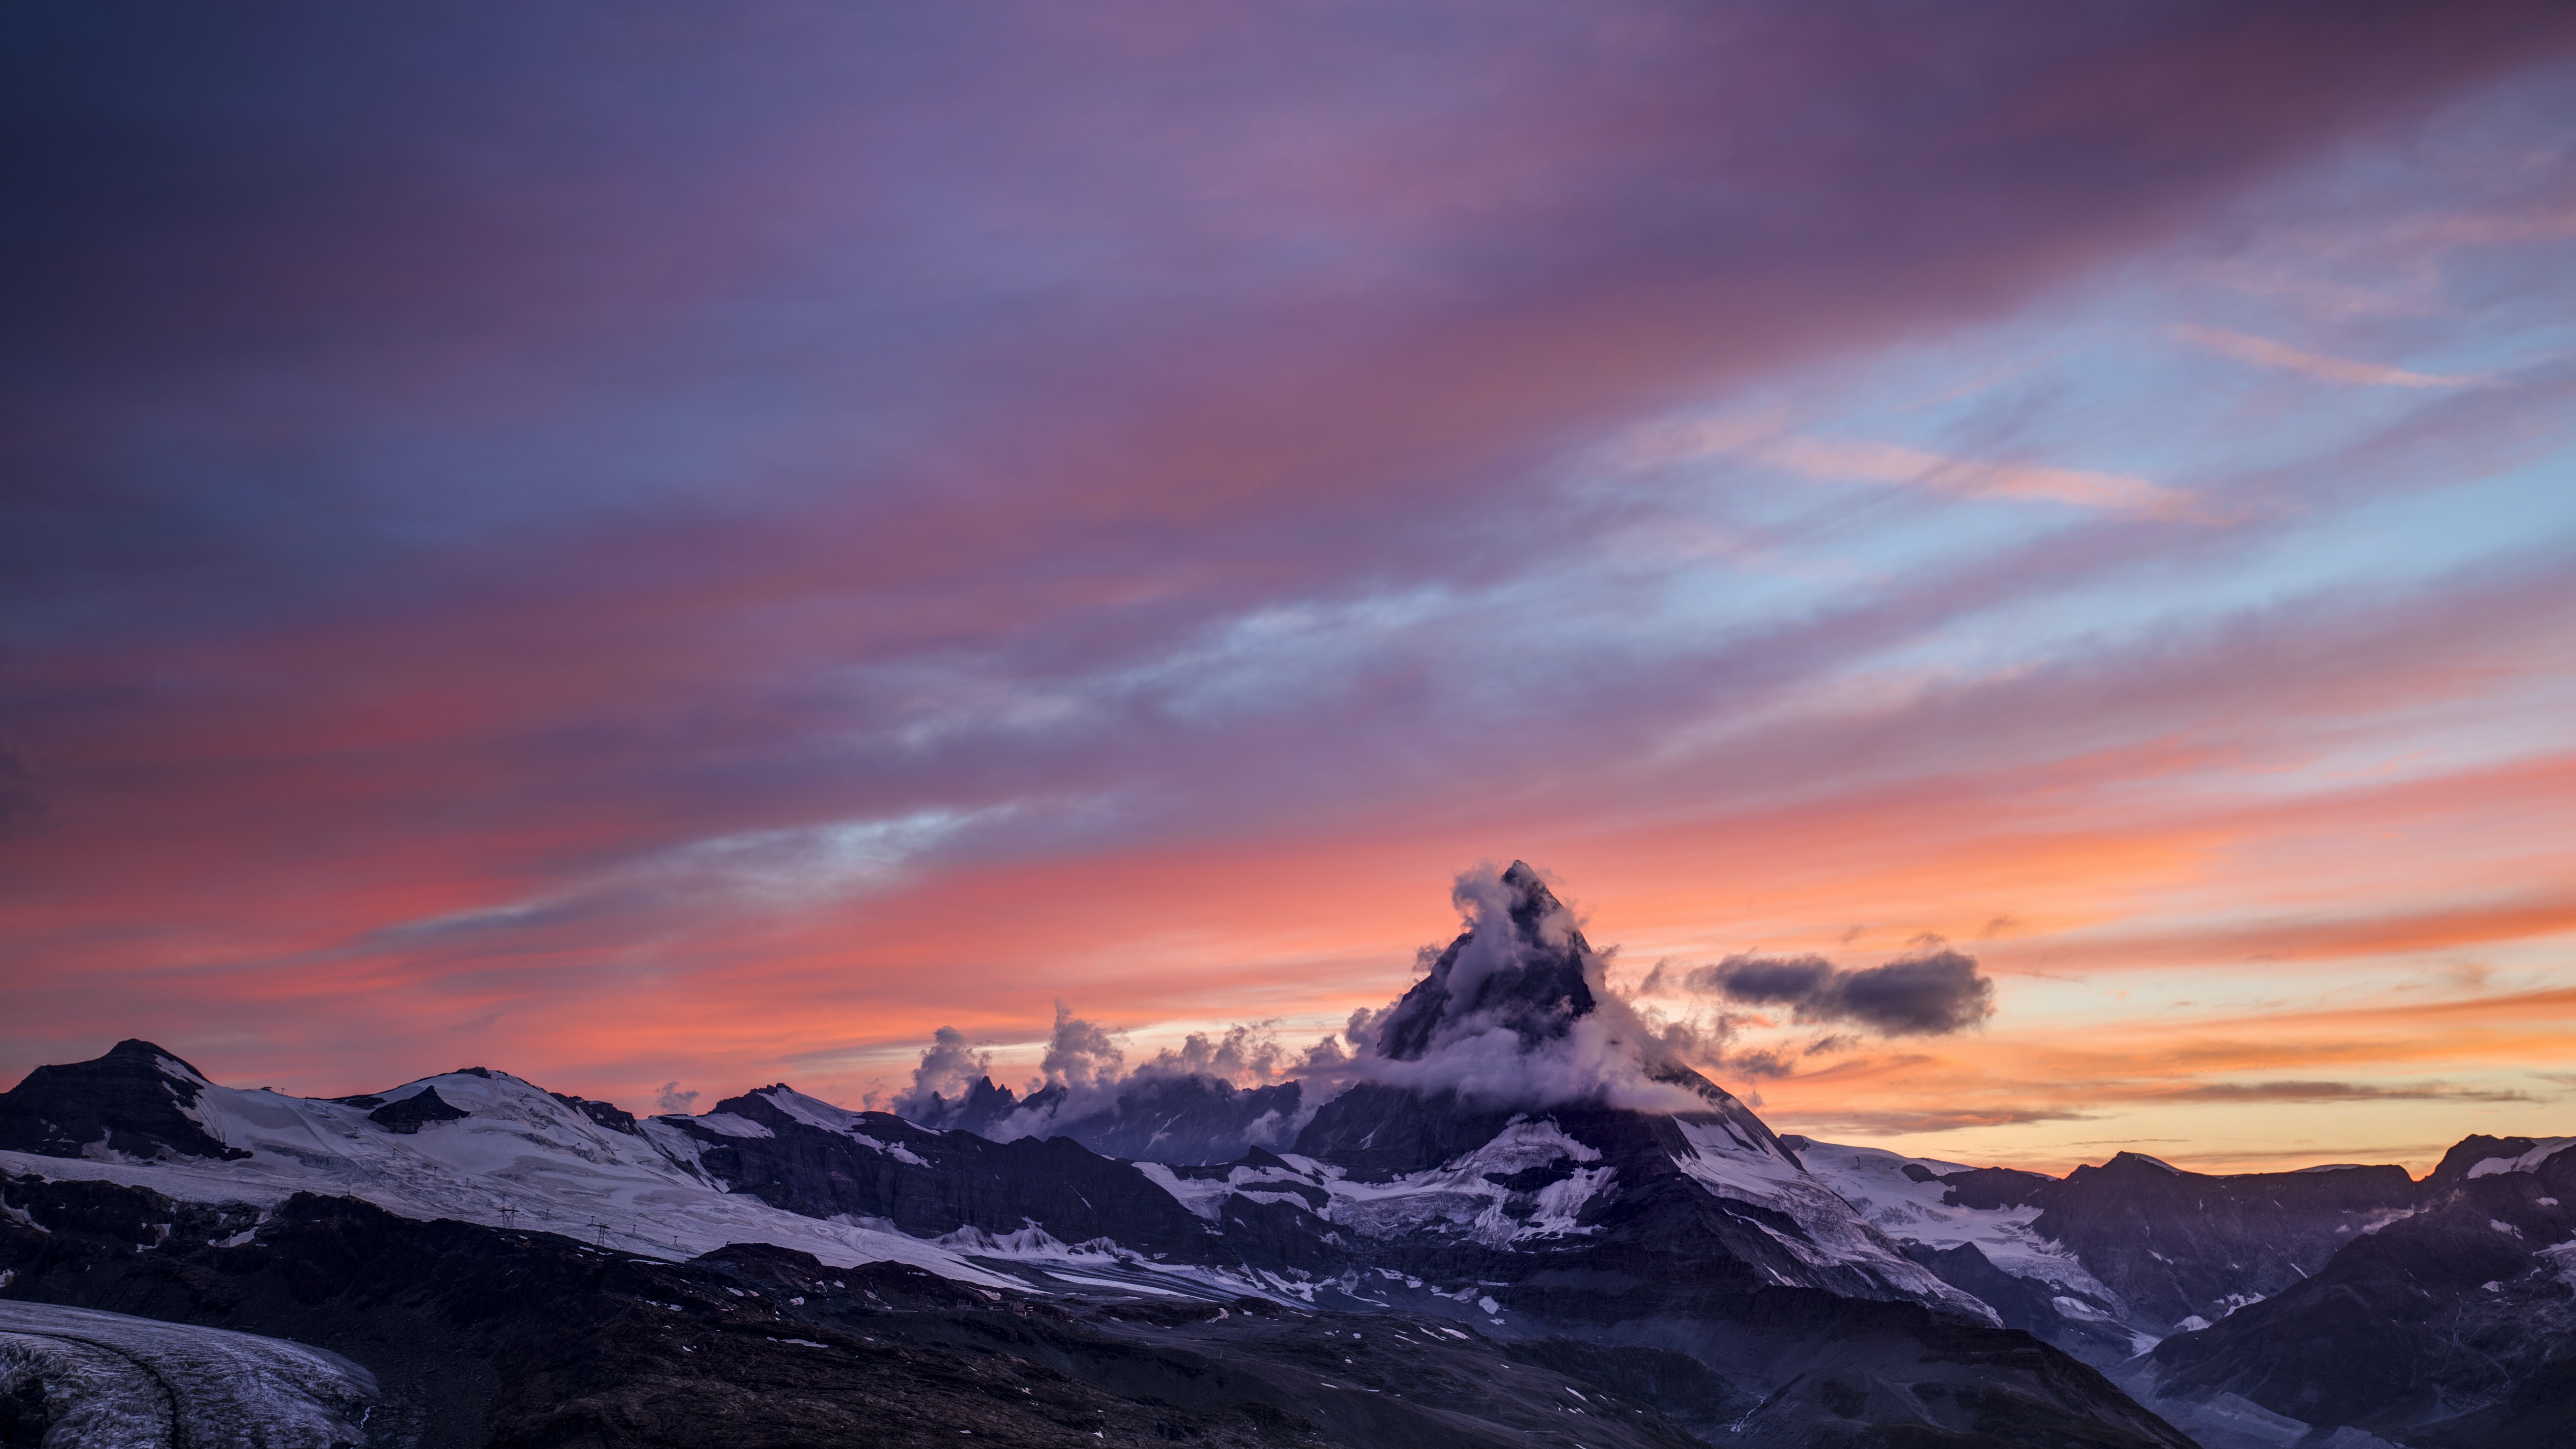 The sun setting over the snow capped Matterhorn mountain, with a blue and orange skyline